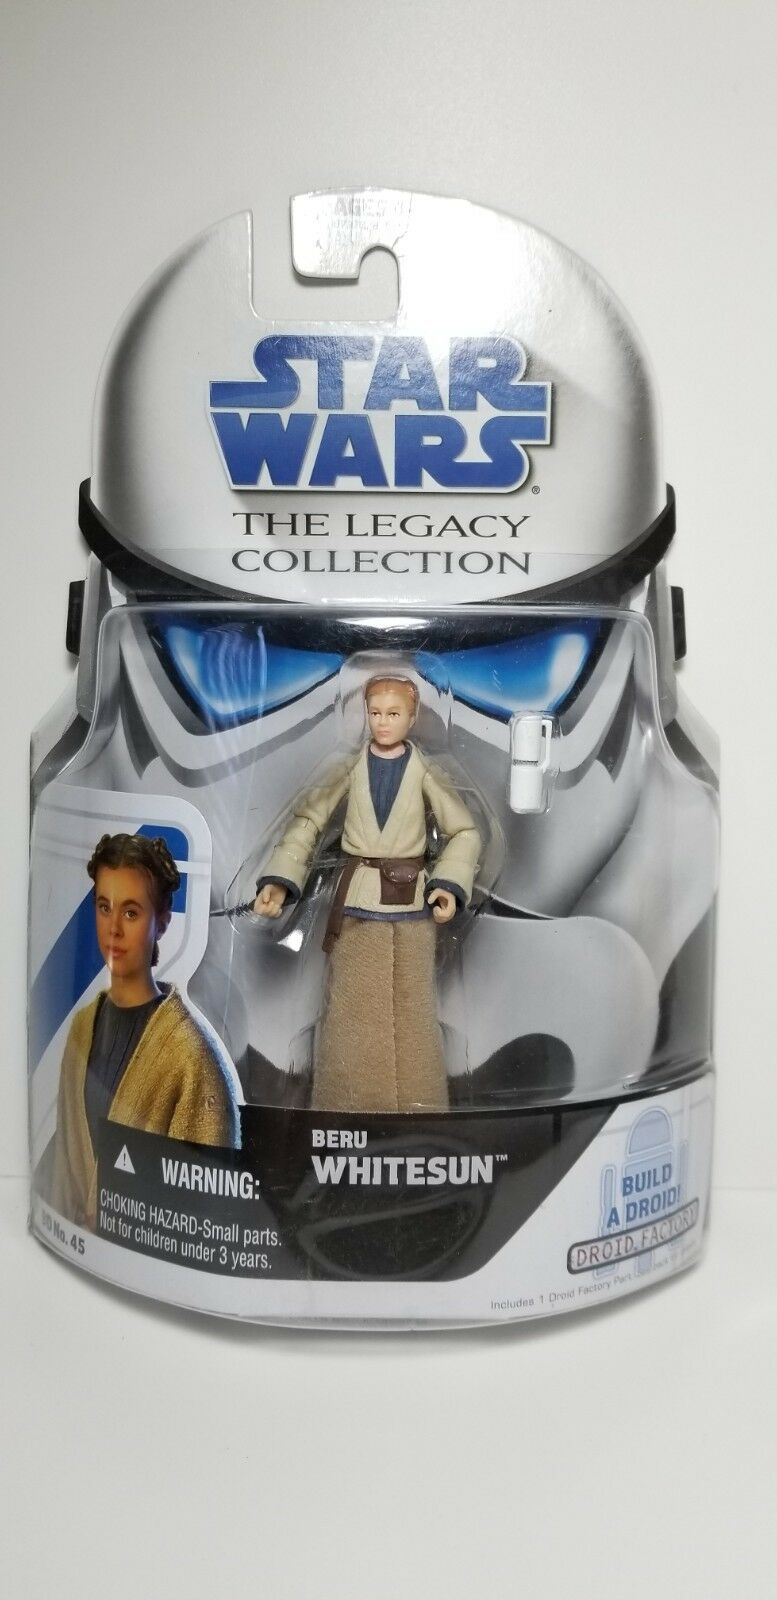 Star Wars - The Legacy Collection - Beru Whitesun (New In Box )